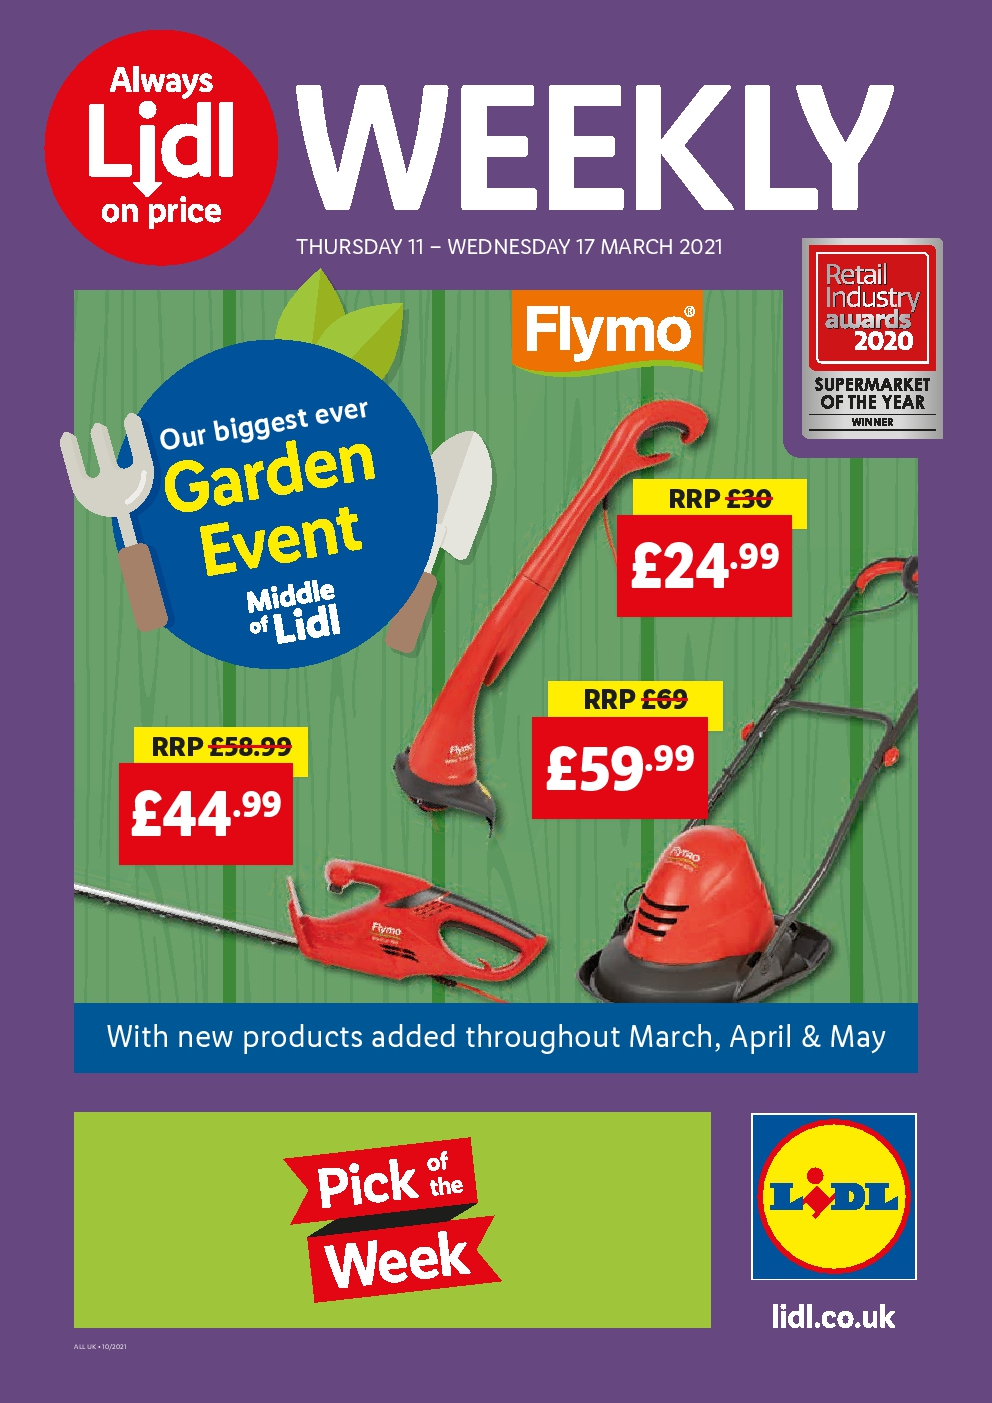 Lidl Weekly Offers 11th March - 17th March 2021